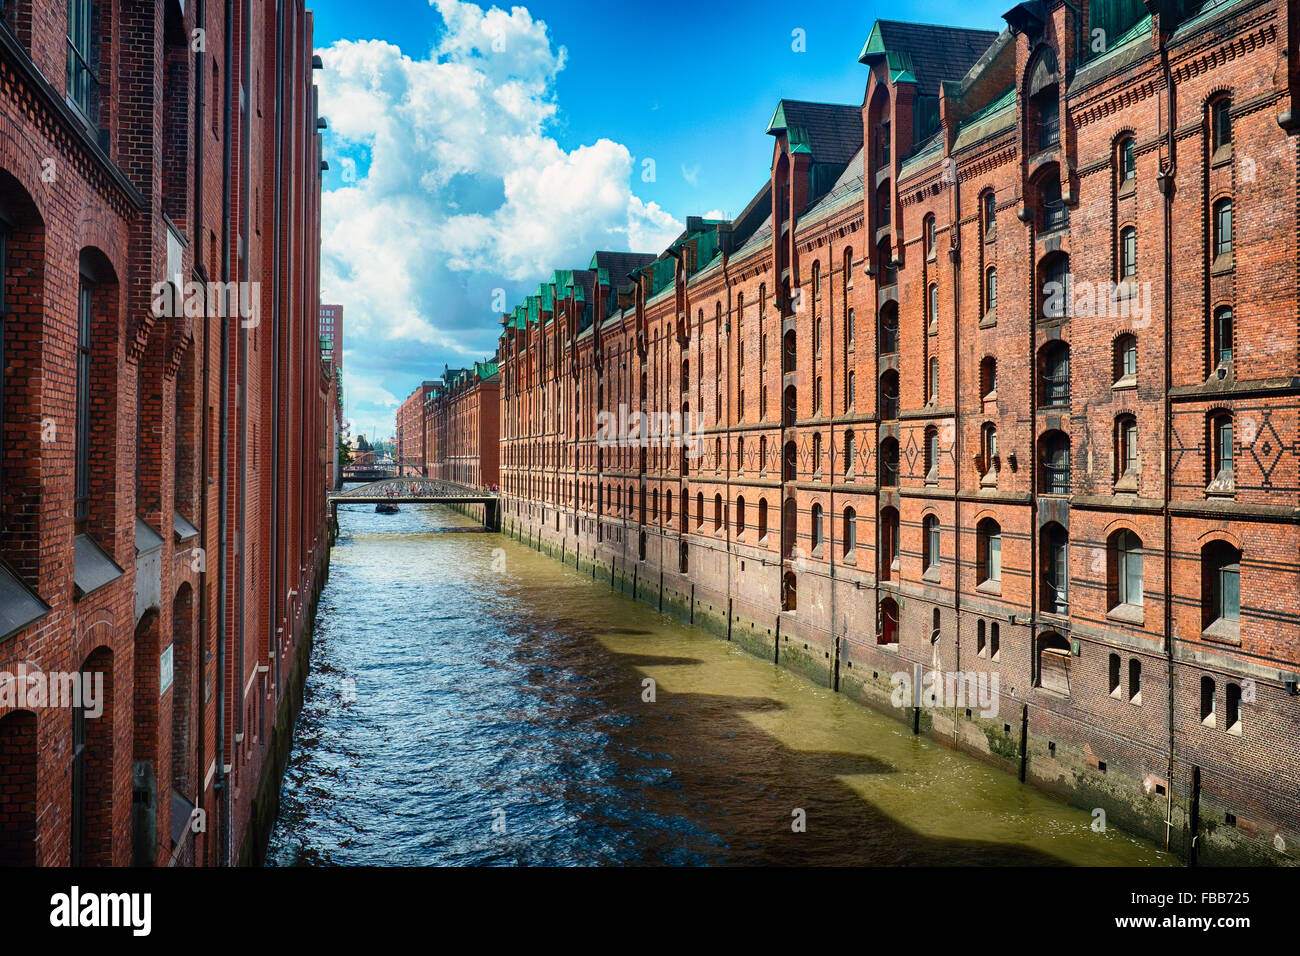 View of a Row of Red Brick Warehouses along a Canal, Speicherstadt, Hamburg, Germany - Stock Image